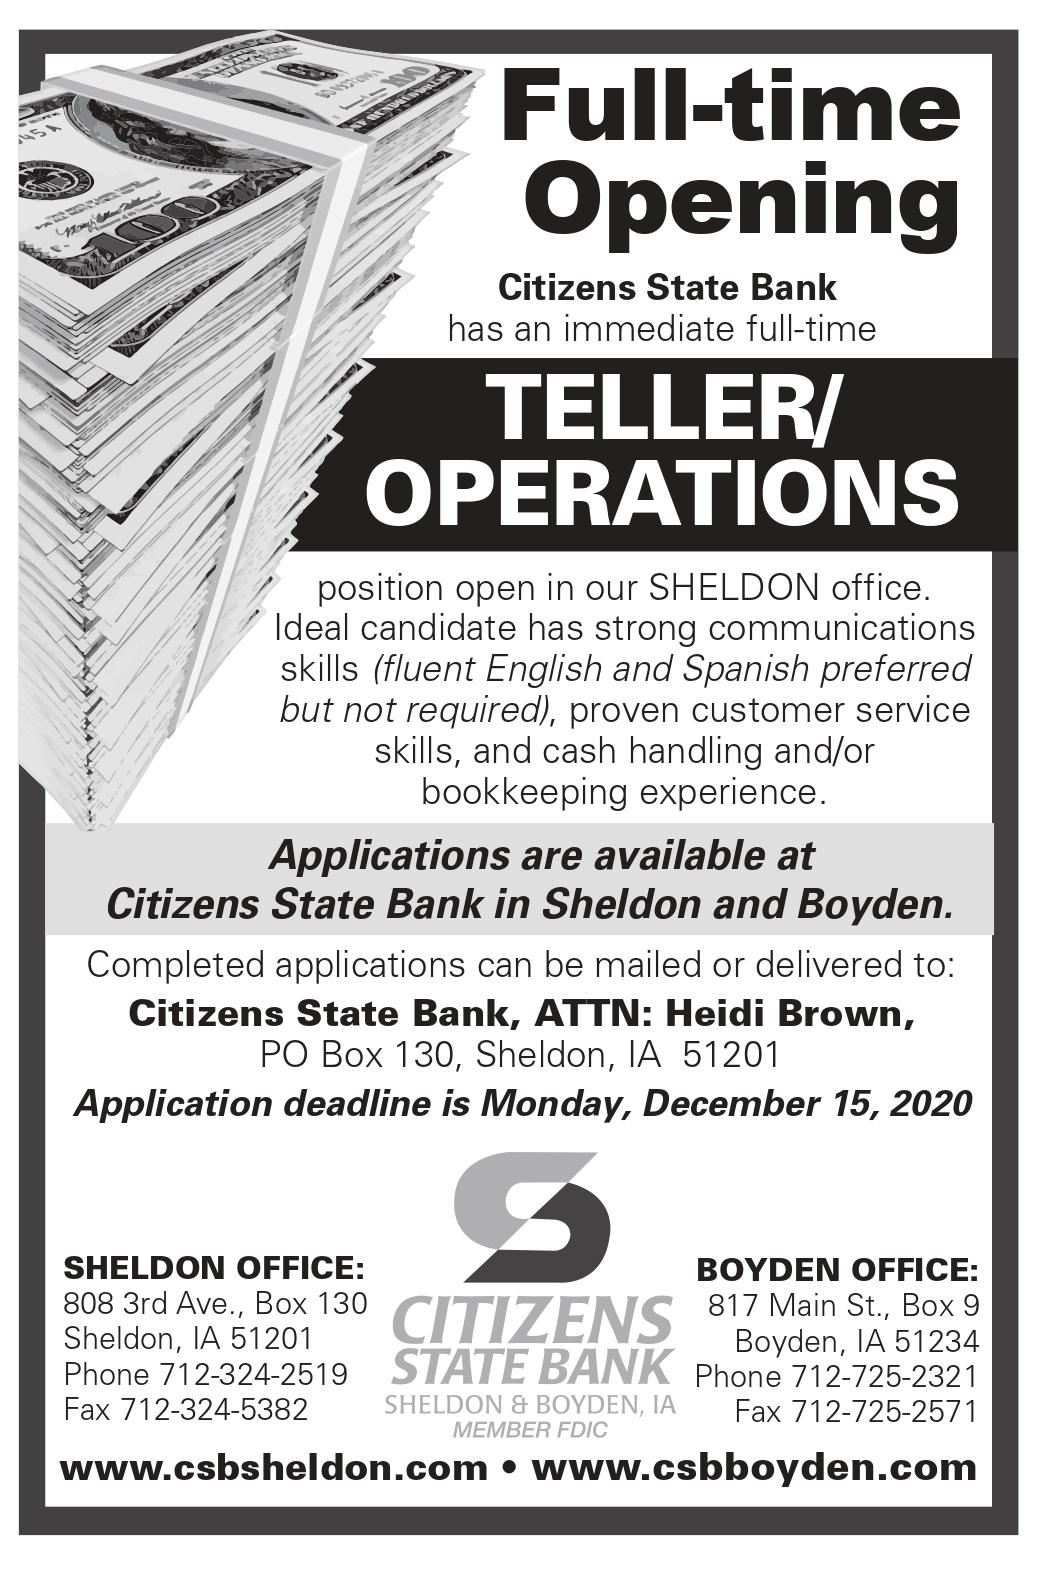 Citizens State Bank has a teller/operations position opening